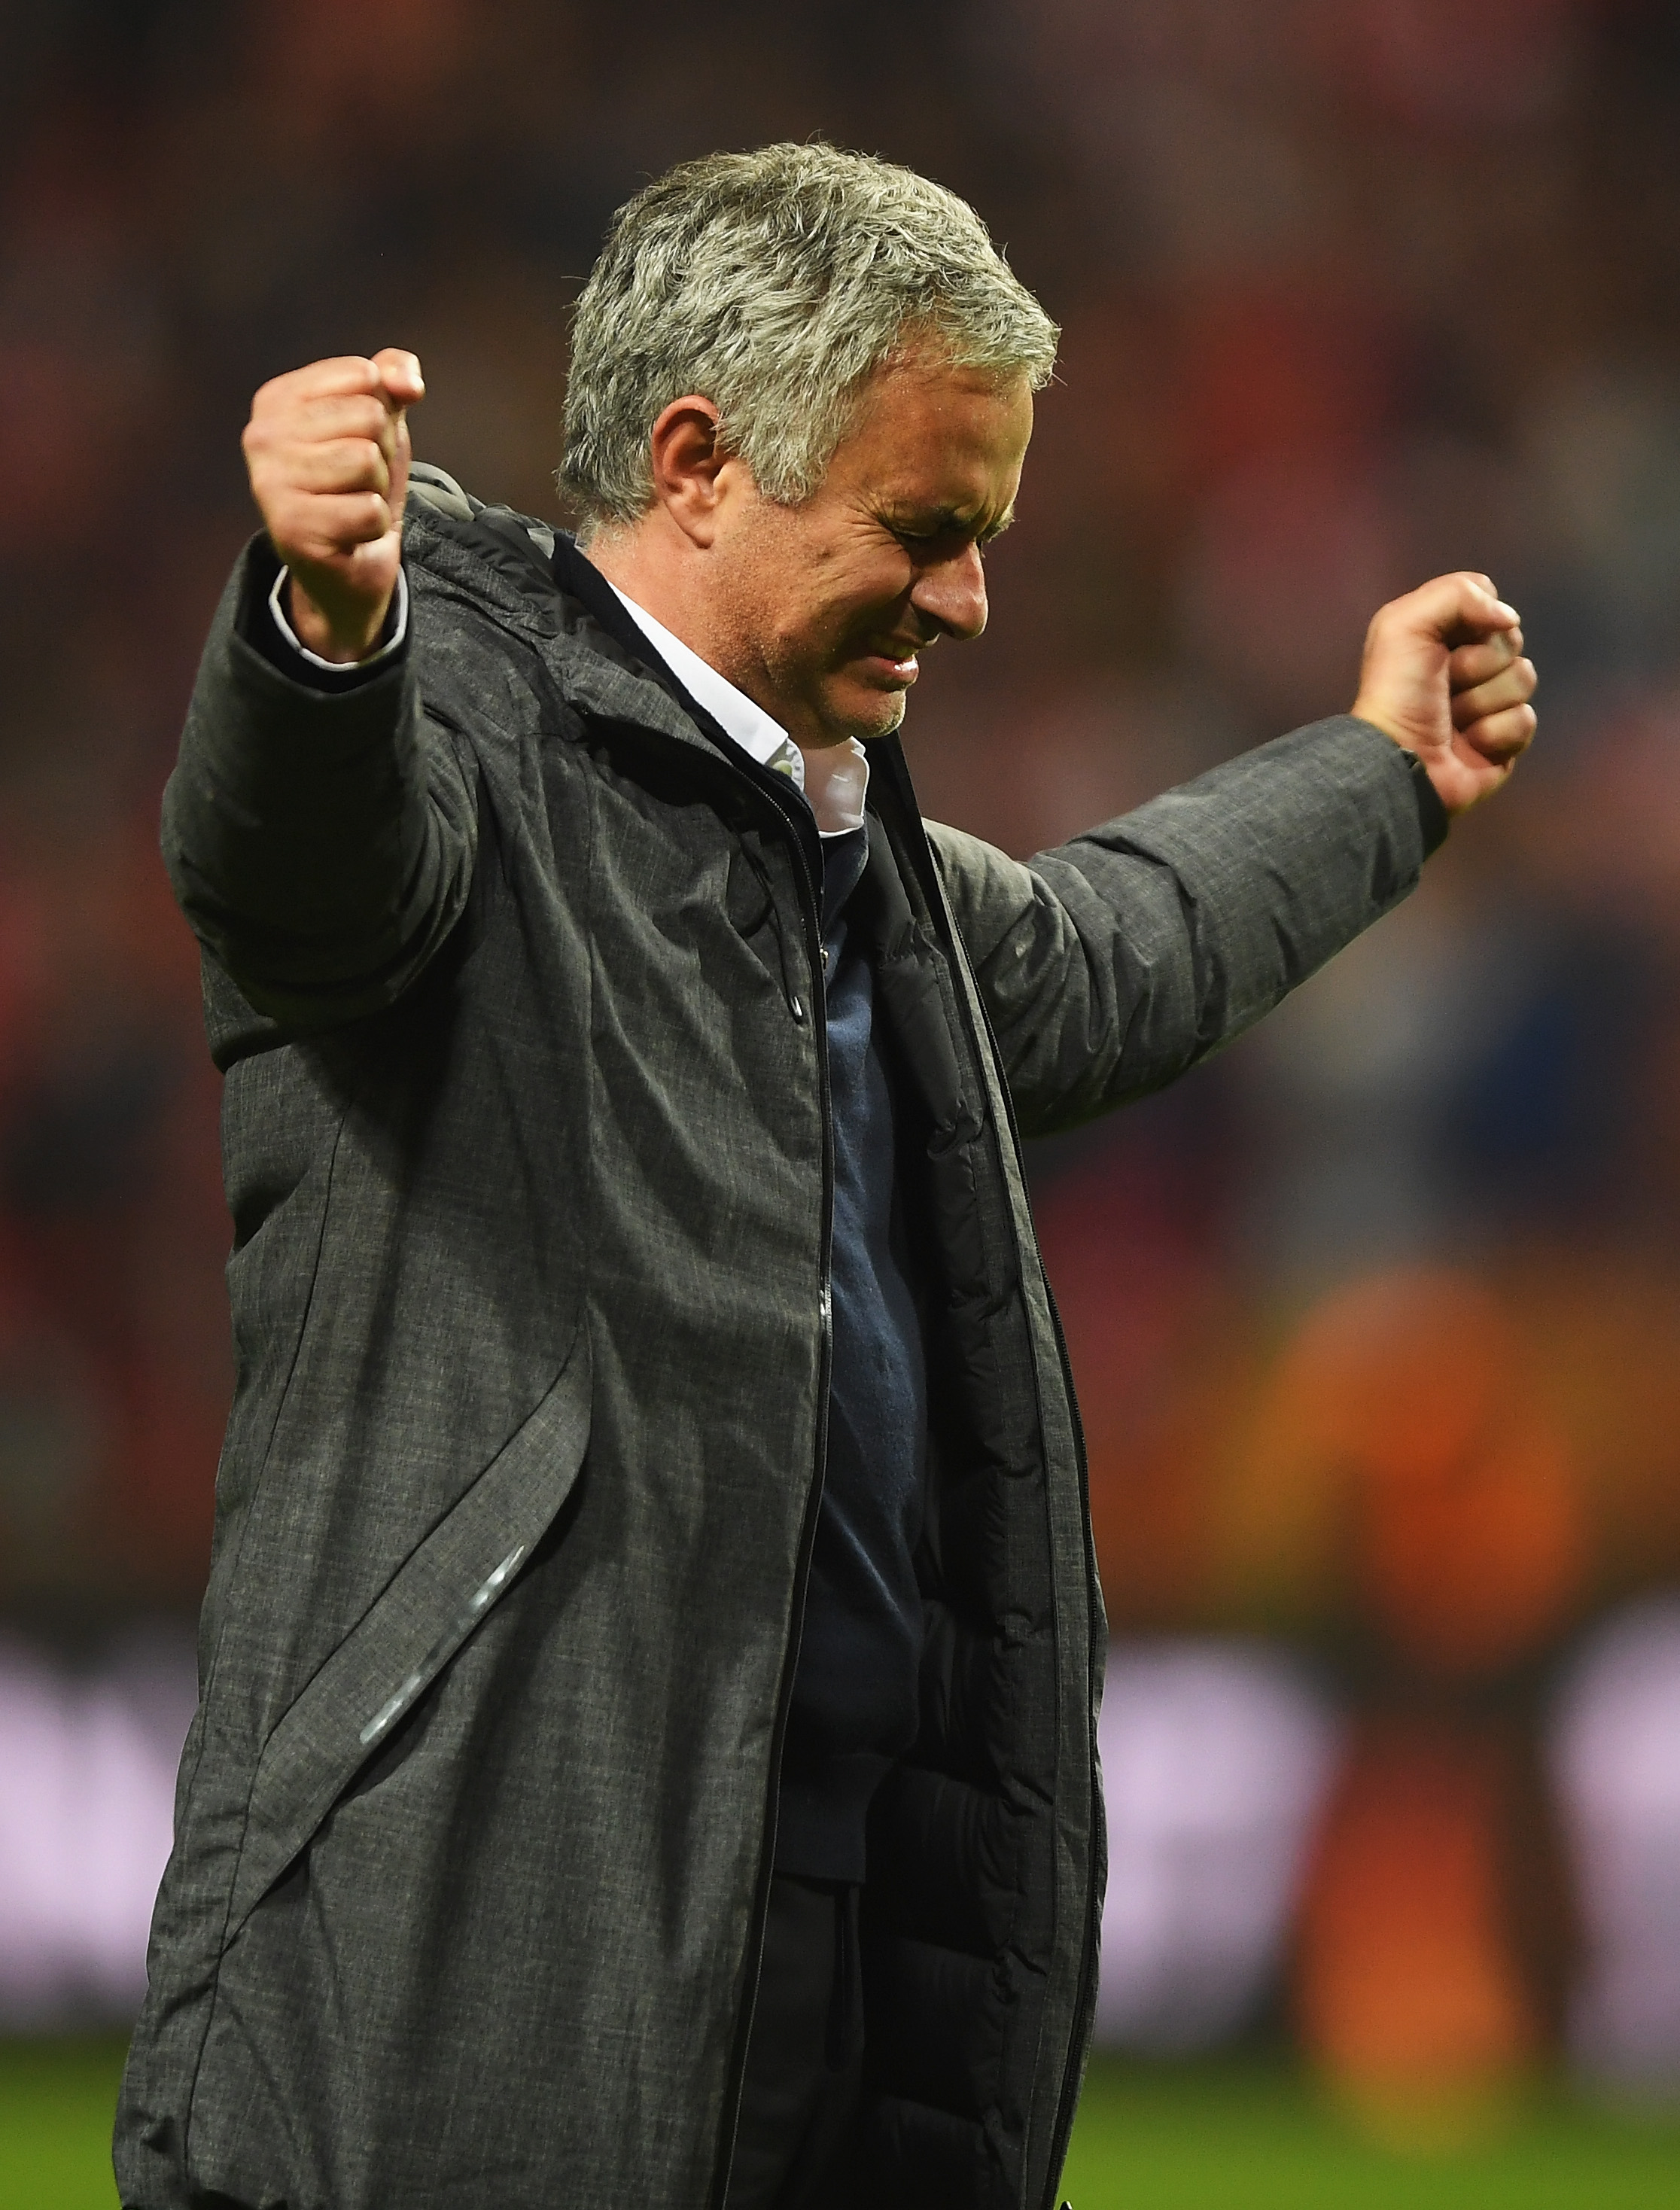 Manchester United reveal details of José Mourinho's payoff